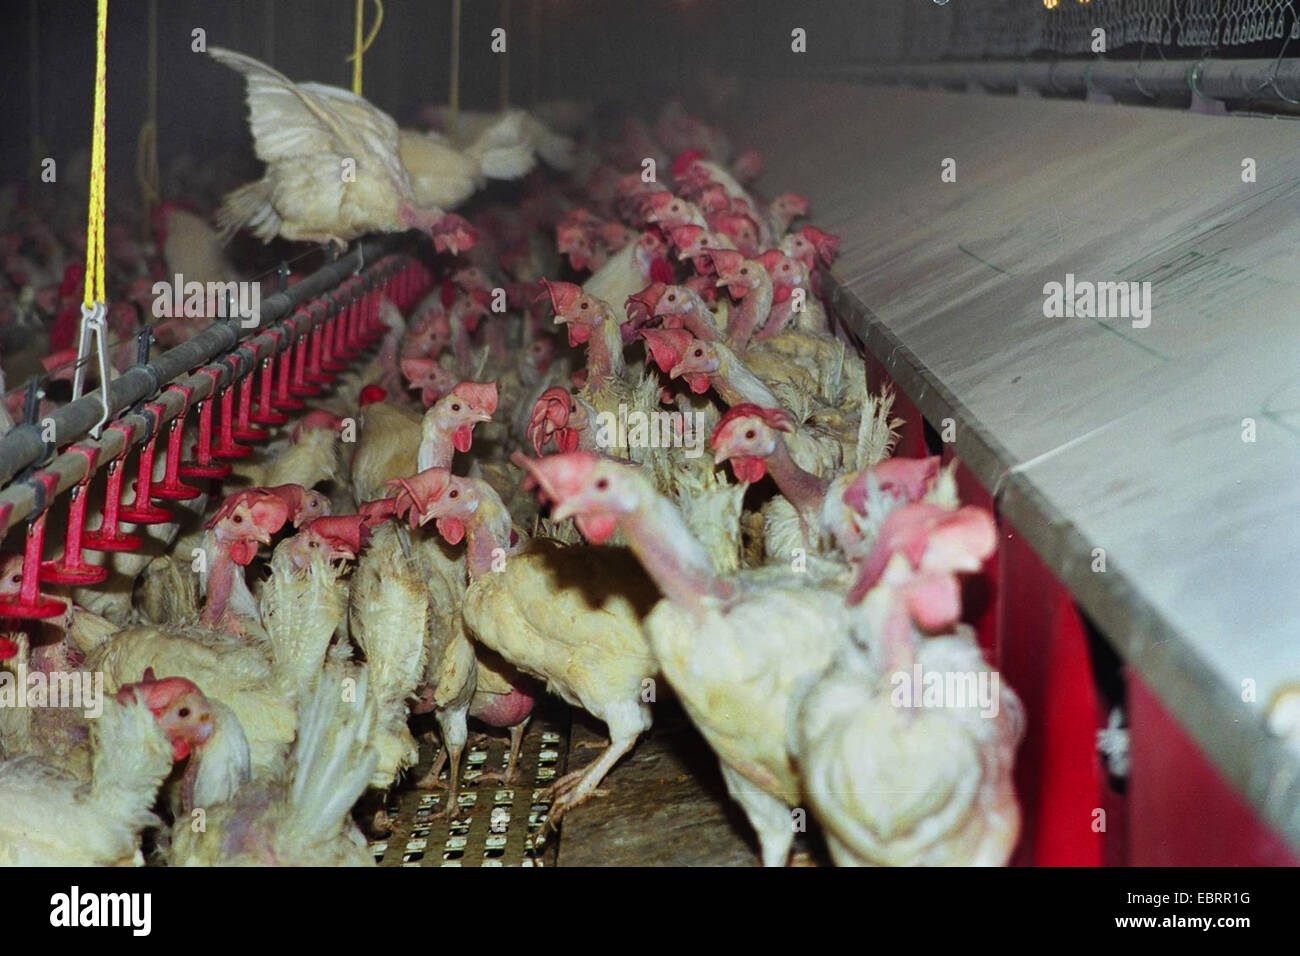 domestic fowl (Gallus gallus f. domestica), thousands of broiler chickens jammed together in a hen house in industrial - Stock Image